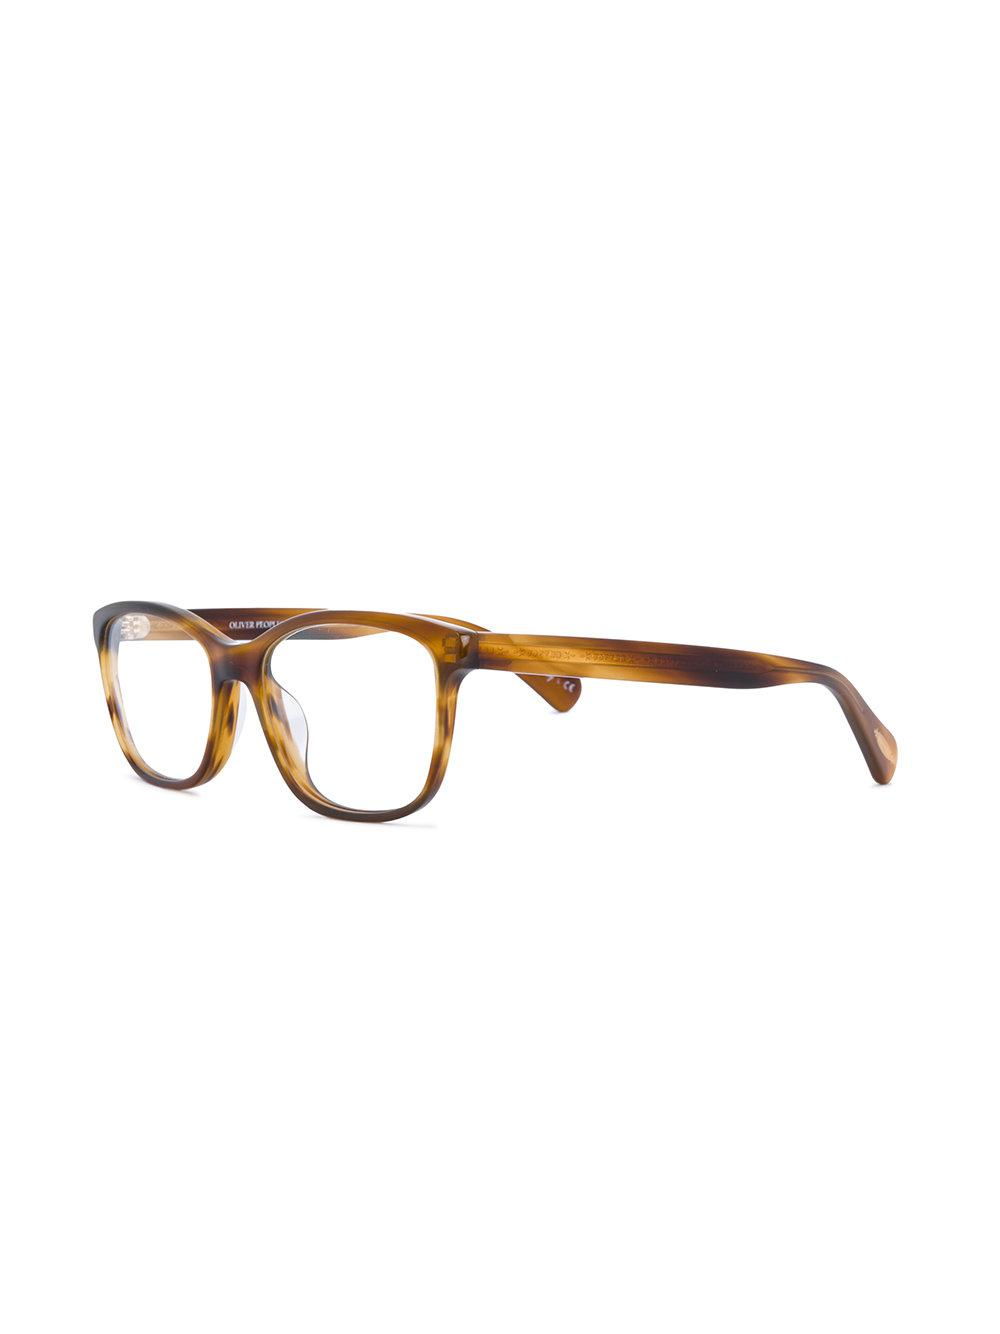 02df7cbd5f Lyst - Oliver Peoples Follies Glasses in Brown